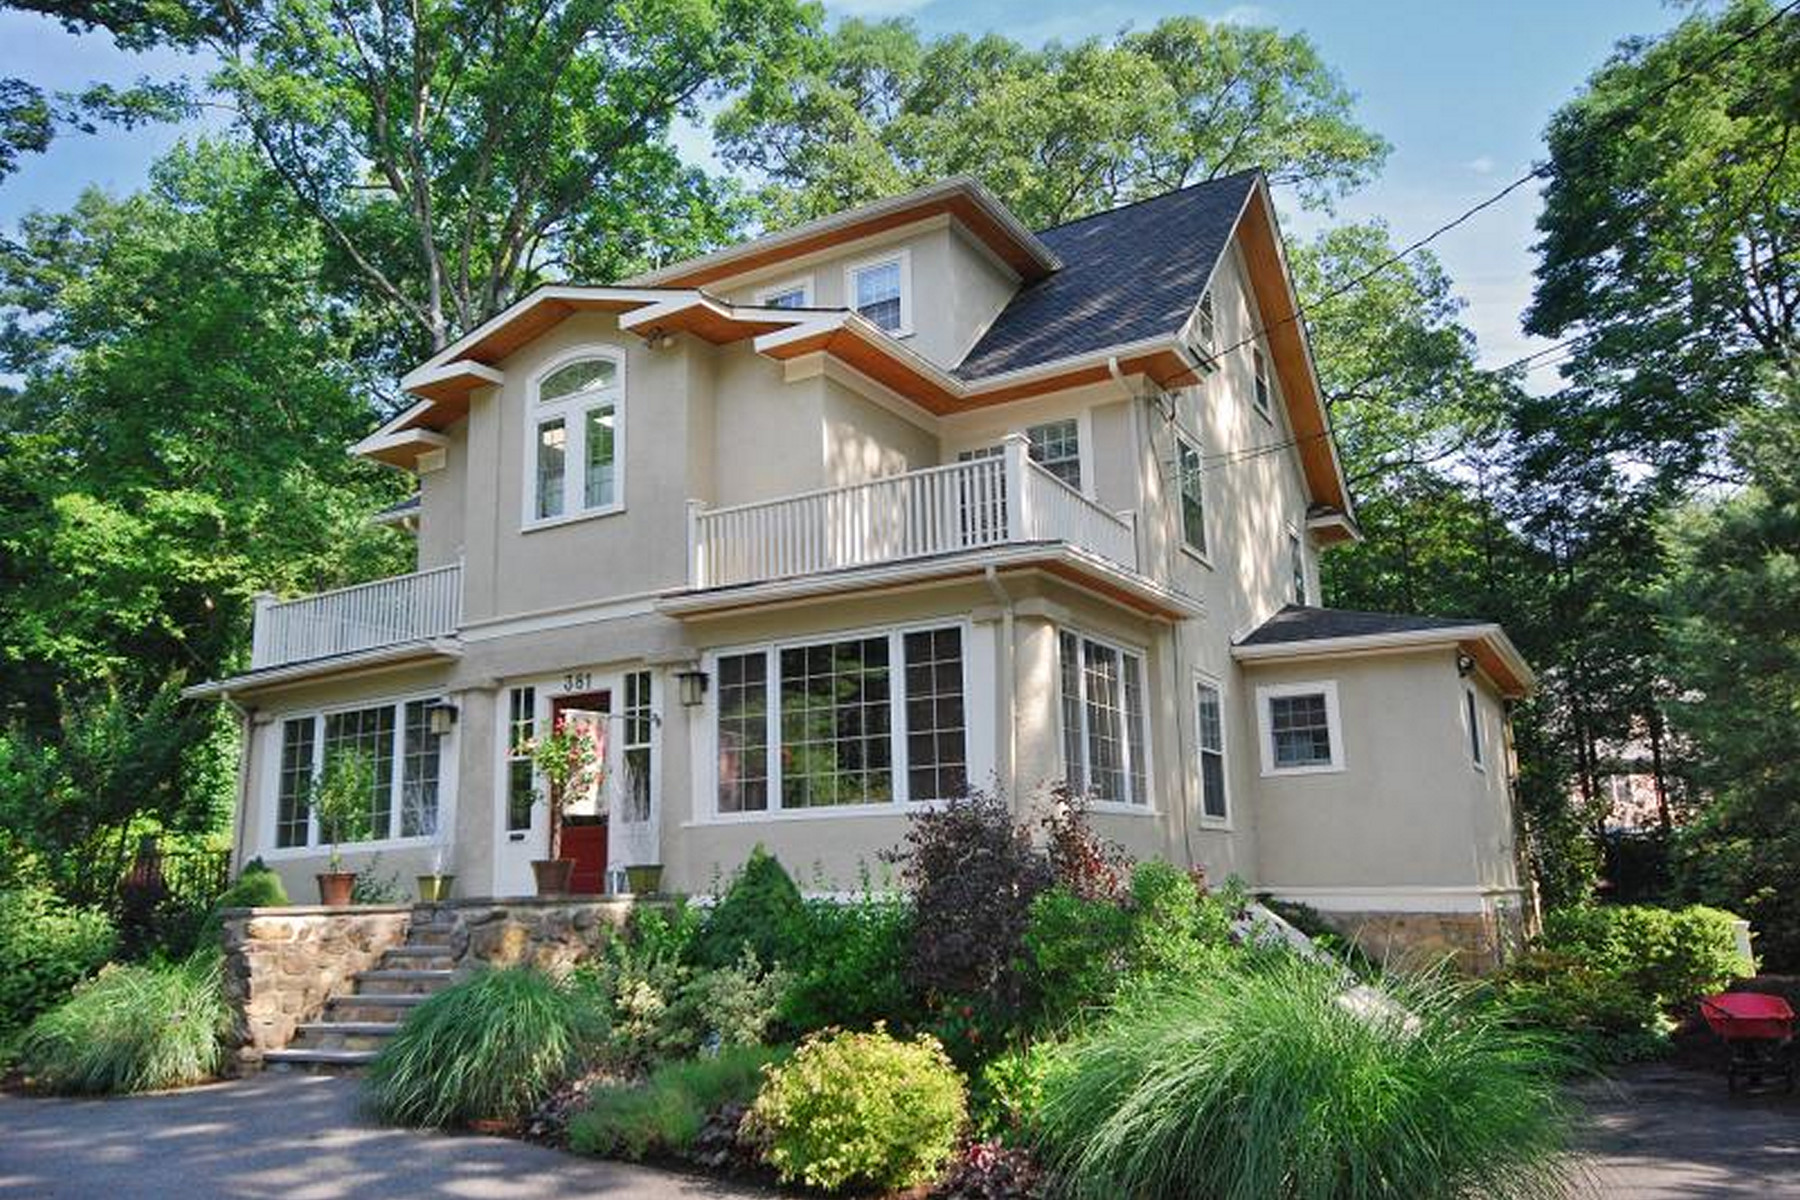 Single Family Homes for Sale at Fabulous Colonial 381 Morris Avenue Mountain Lakes, New Jersey 07046 United States